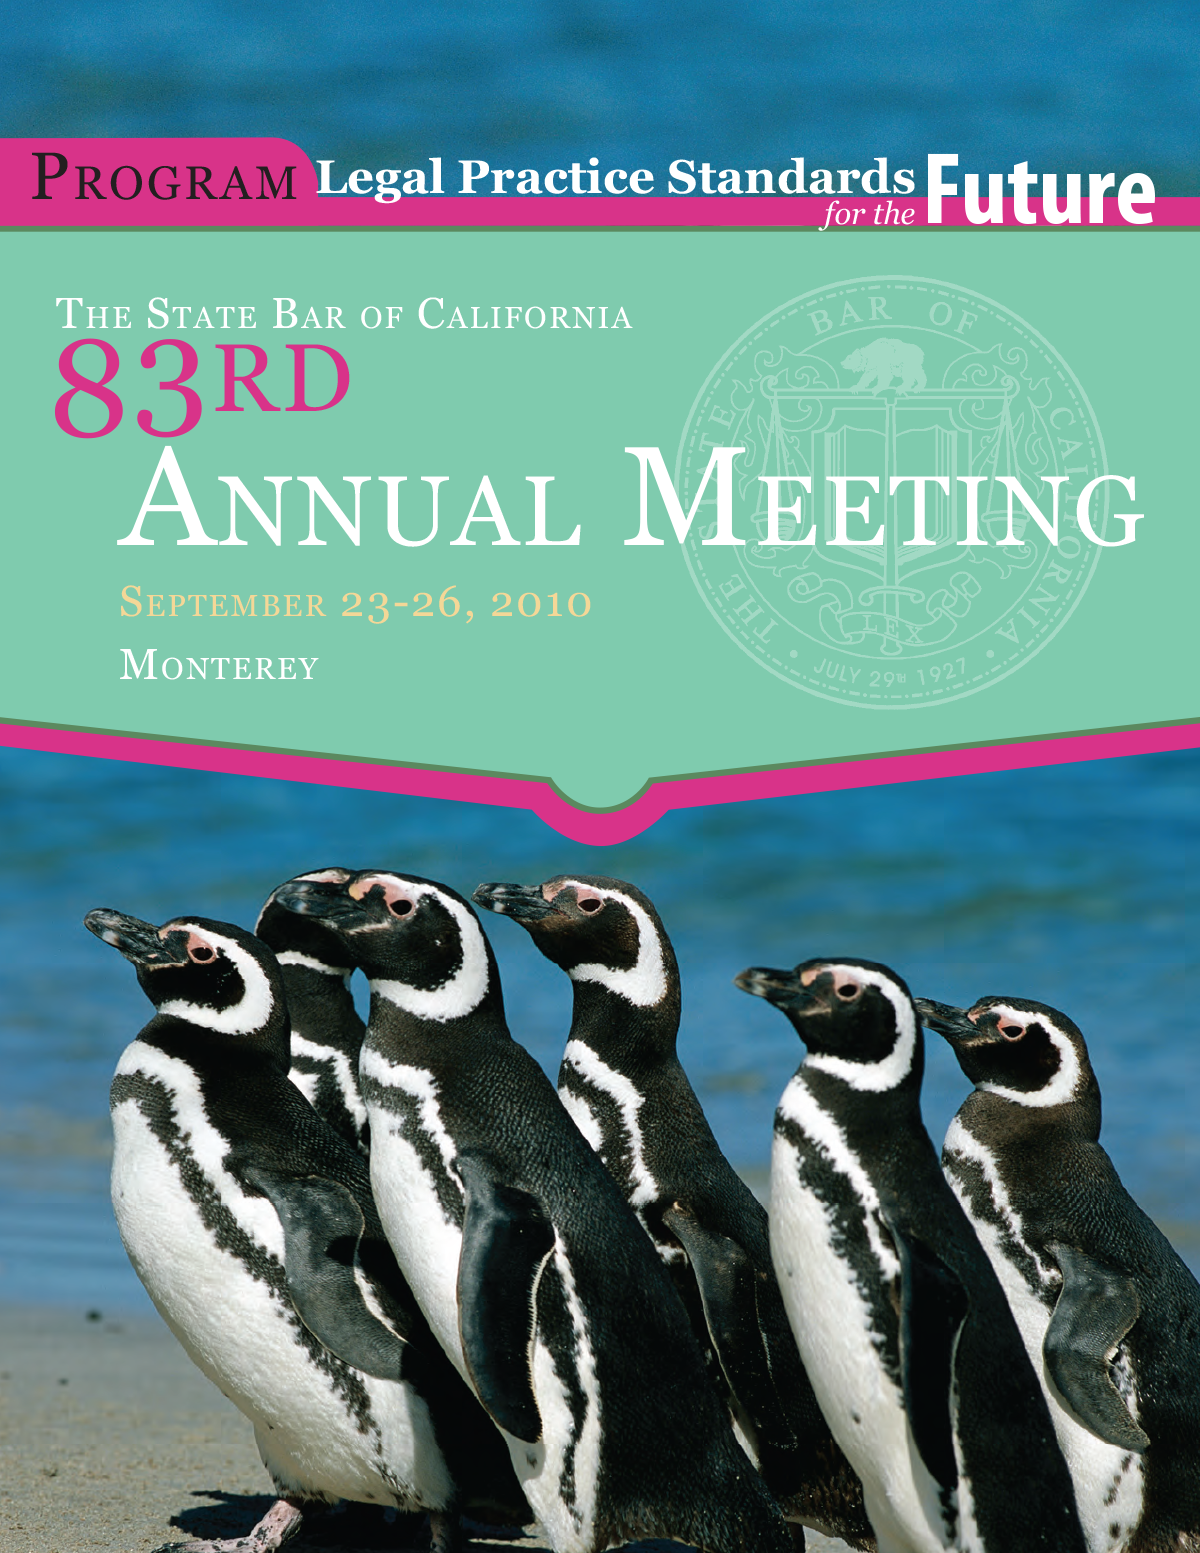 State Bar of California 83rd Annual Meeting